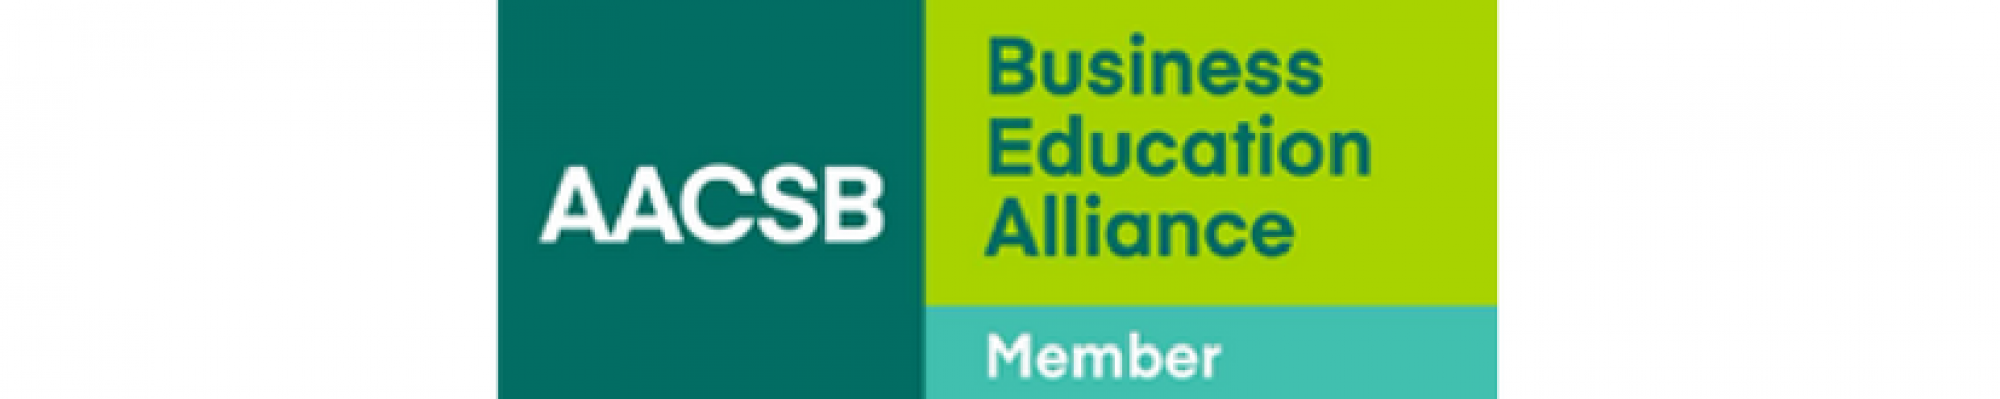 L'UNIVERSITE CENTRALE REJOINT LE PLUS GRAND RESEAU DES GRANDES ECOLES DE BUSINESS - AACSB